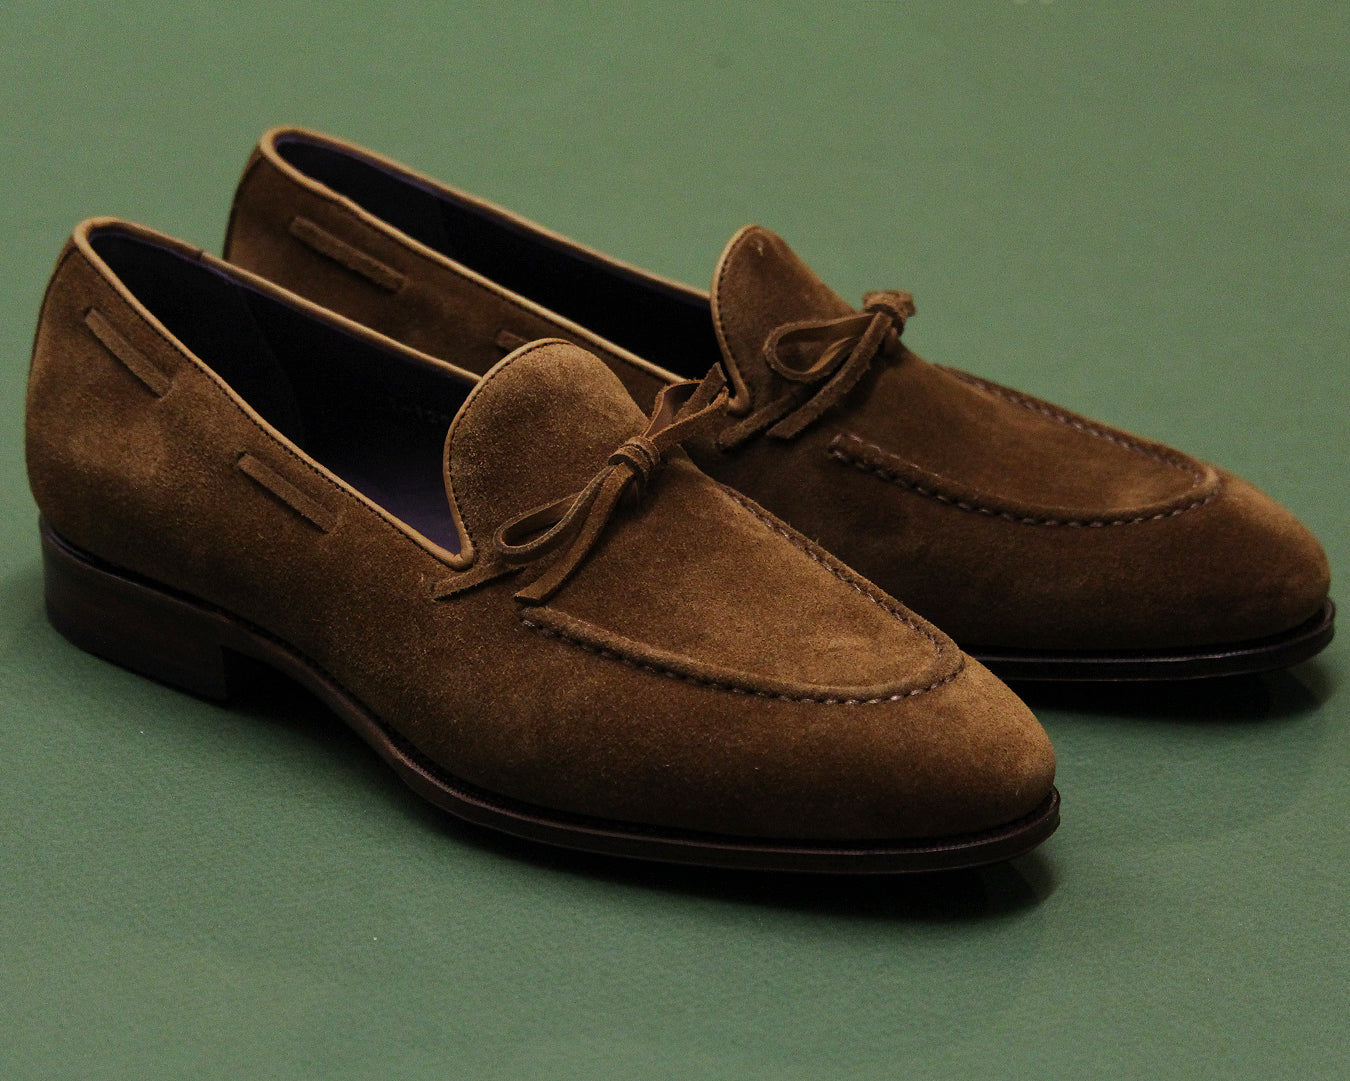 String Loafers 80228 on the Uetam Last with leather soles.